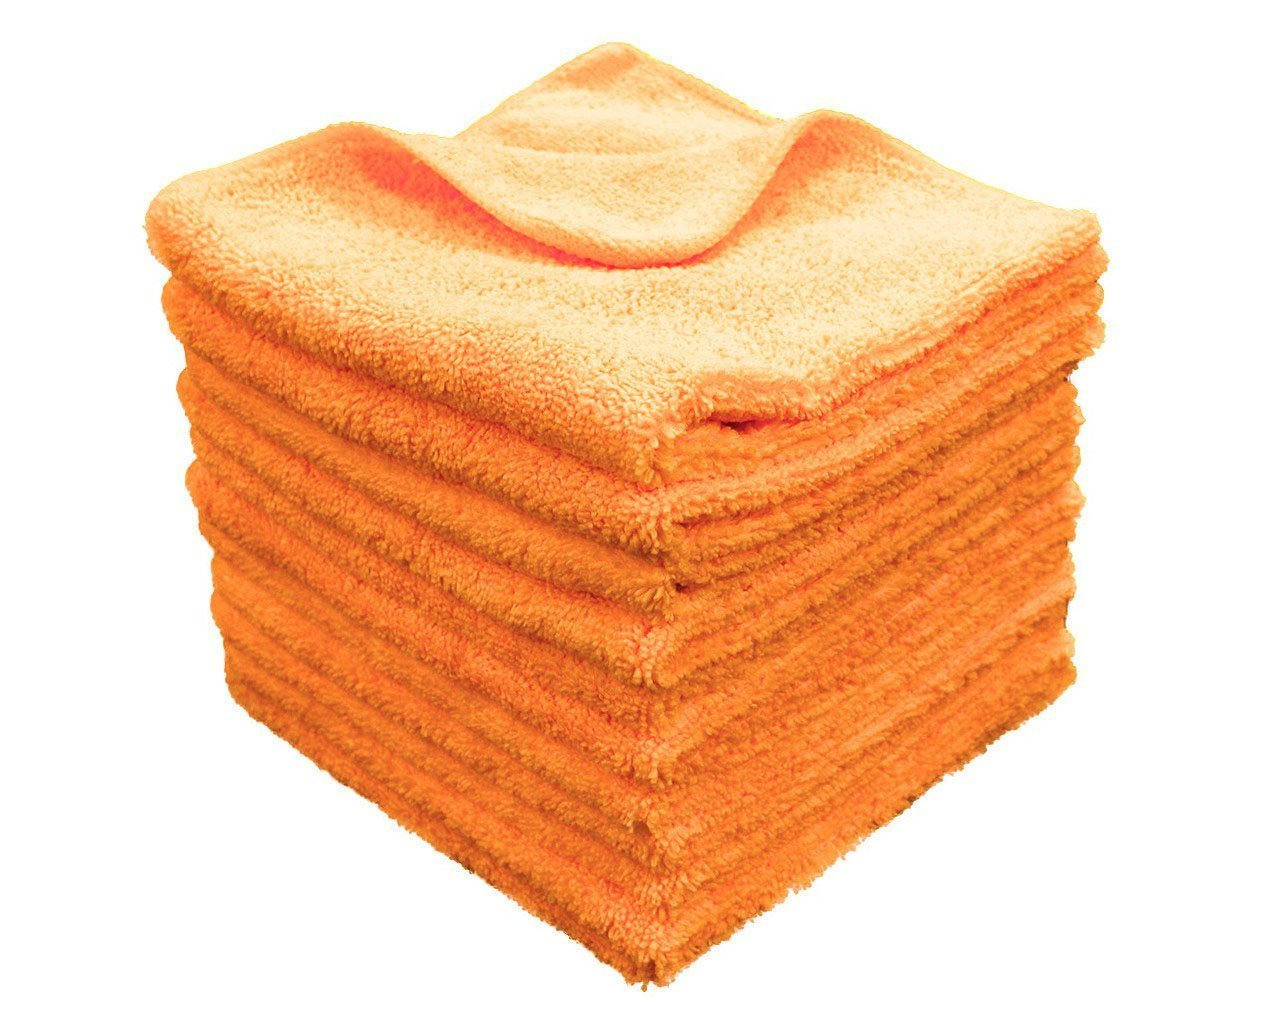 100% Premium Grade Microfiber All-Purpose Superior Microfiber Towels! Large 16x16 330GSM HeavyWeight - Ideal for TV Screens, Laptops, Windows, Mirrors, Cell Phones, Glasses and More! (Orange, 12 Pack)